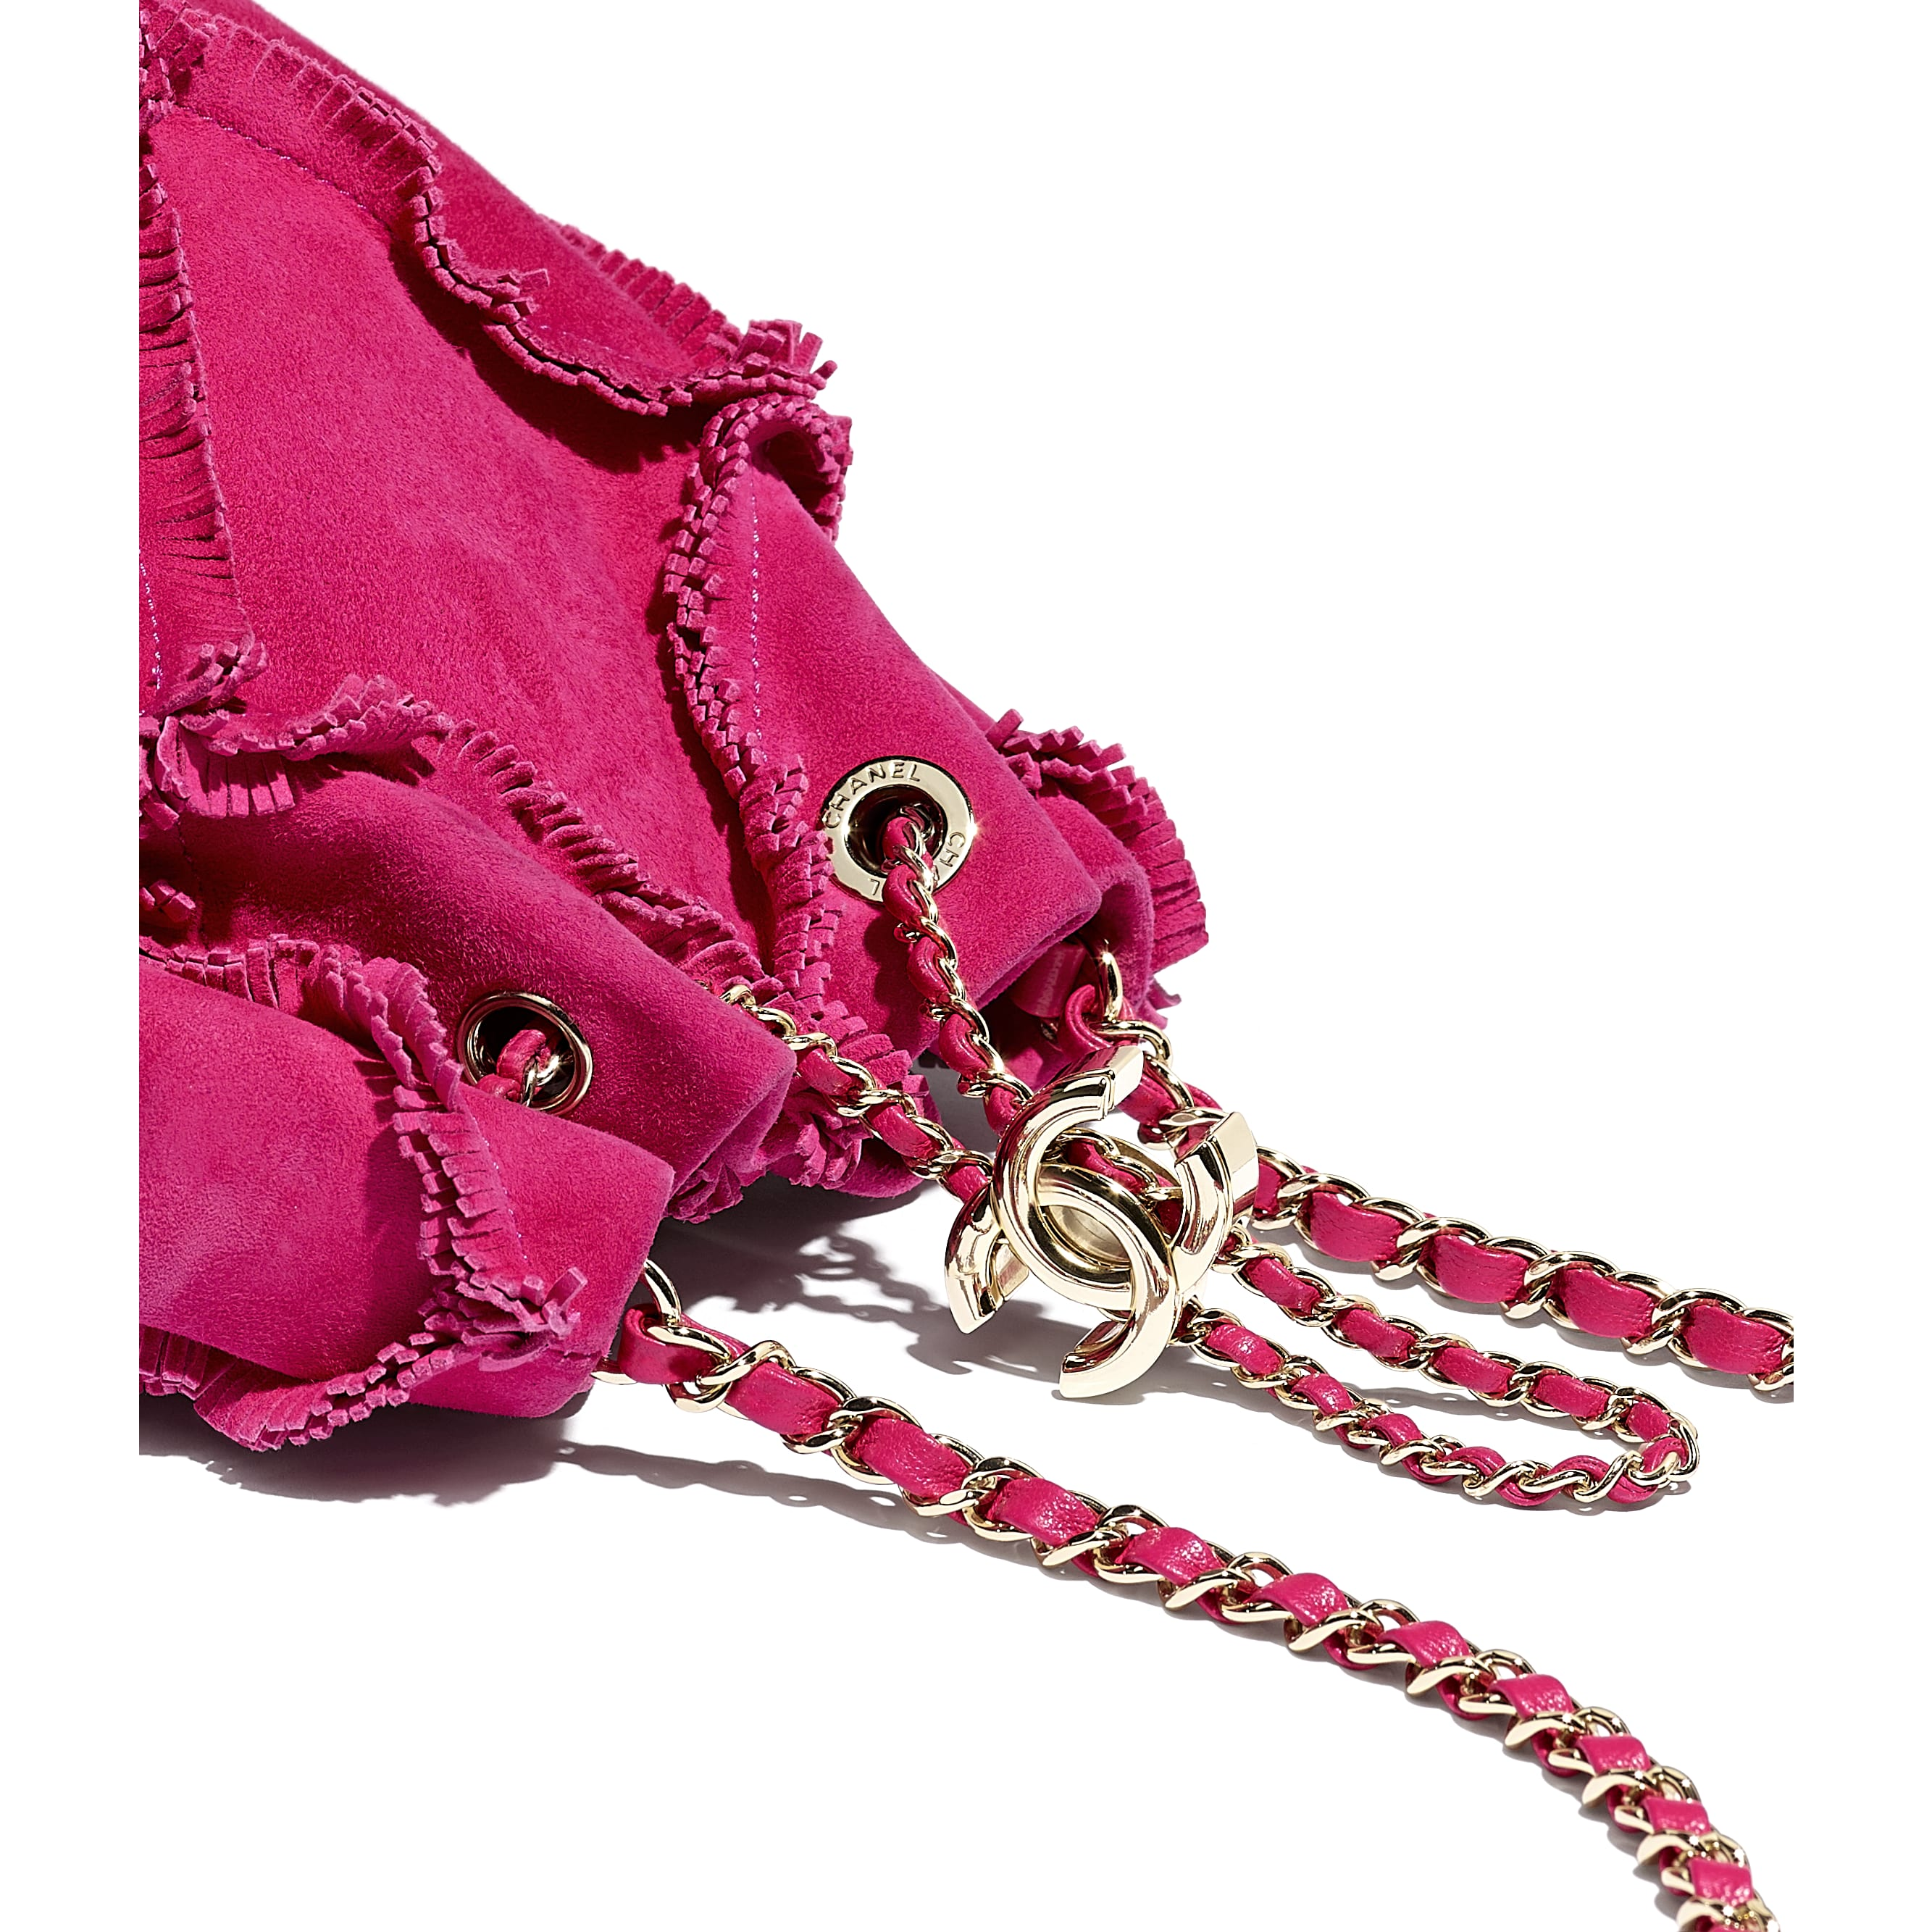 Small Drawstring Bag - Fuchsia - Suede Goatskin & Gold-Tone Metal - CHANEL - Extra view - see standard sized version